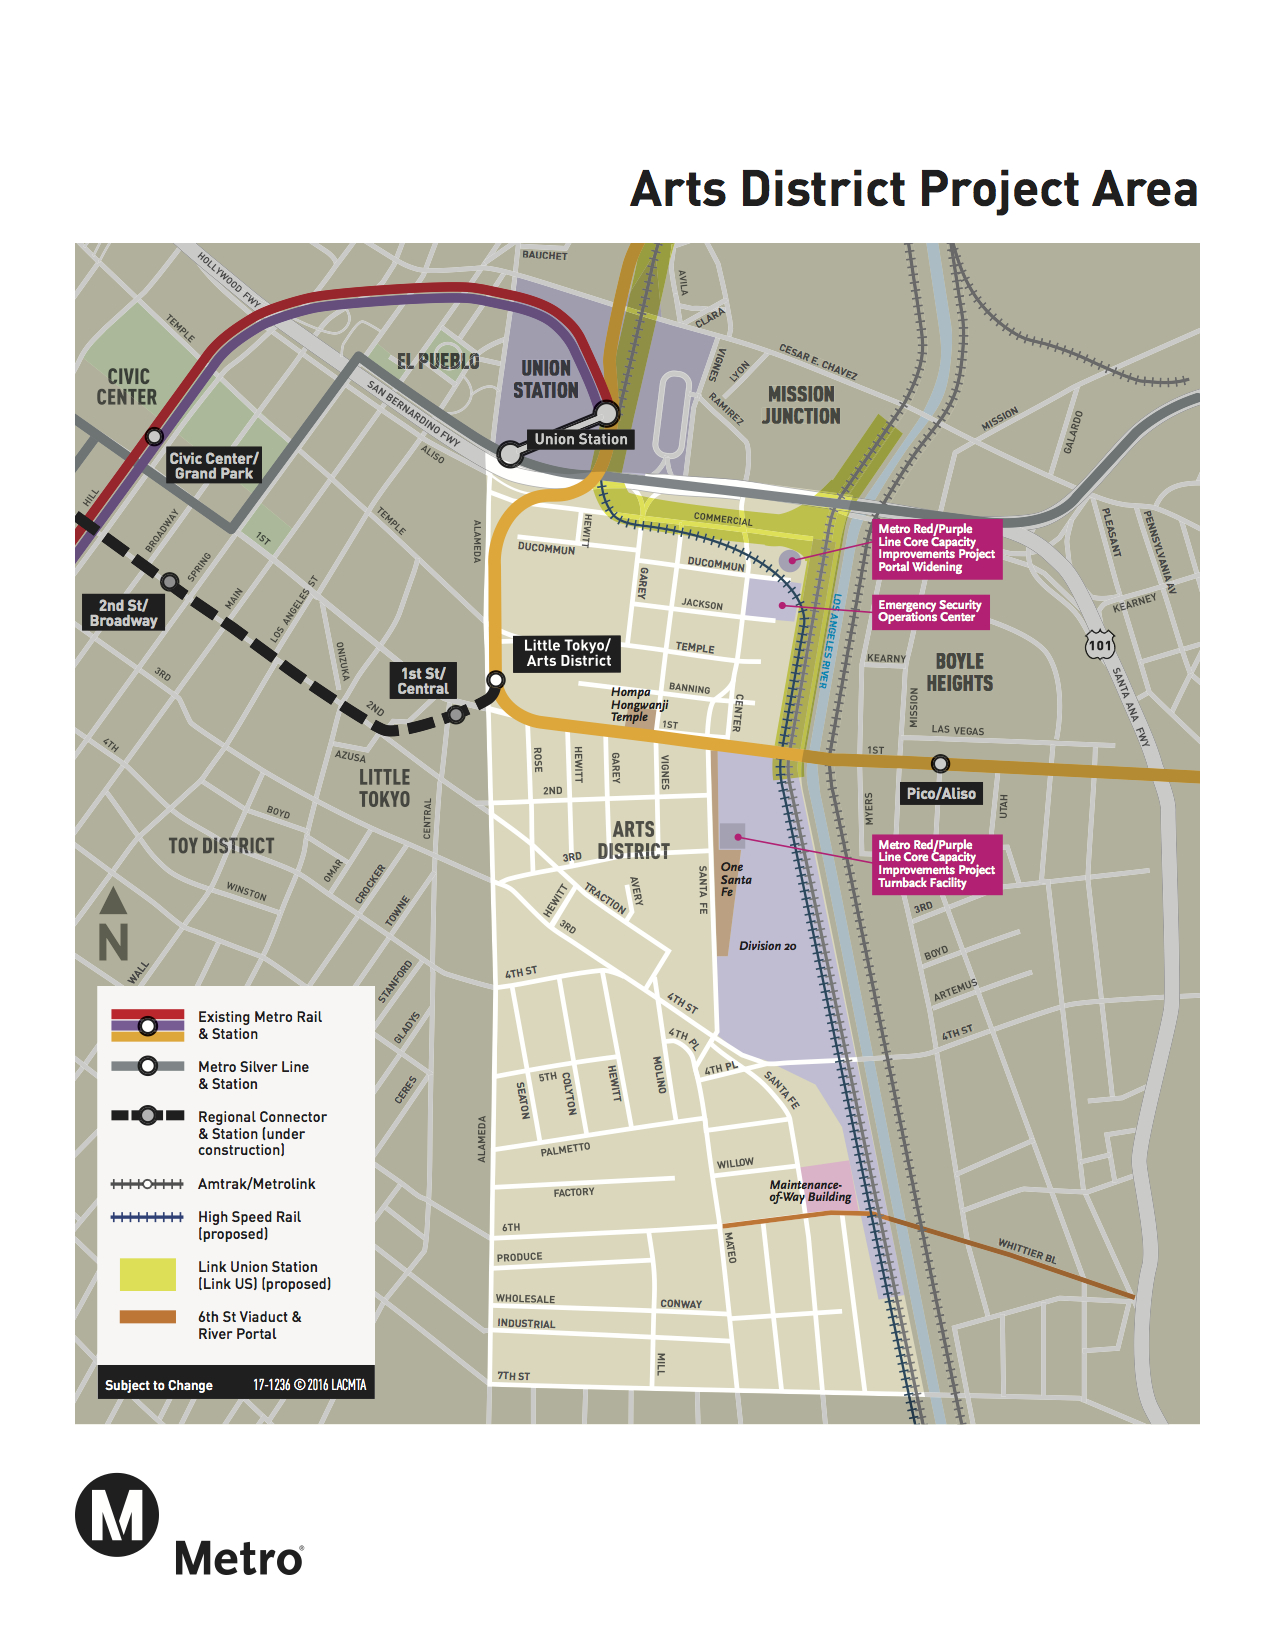 Subway Capacity Project Coming Soon The Source - Los angeles metro expansion map